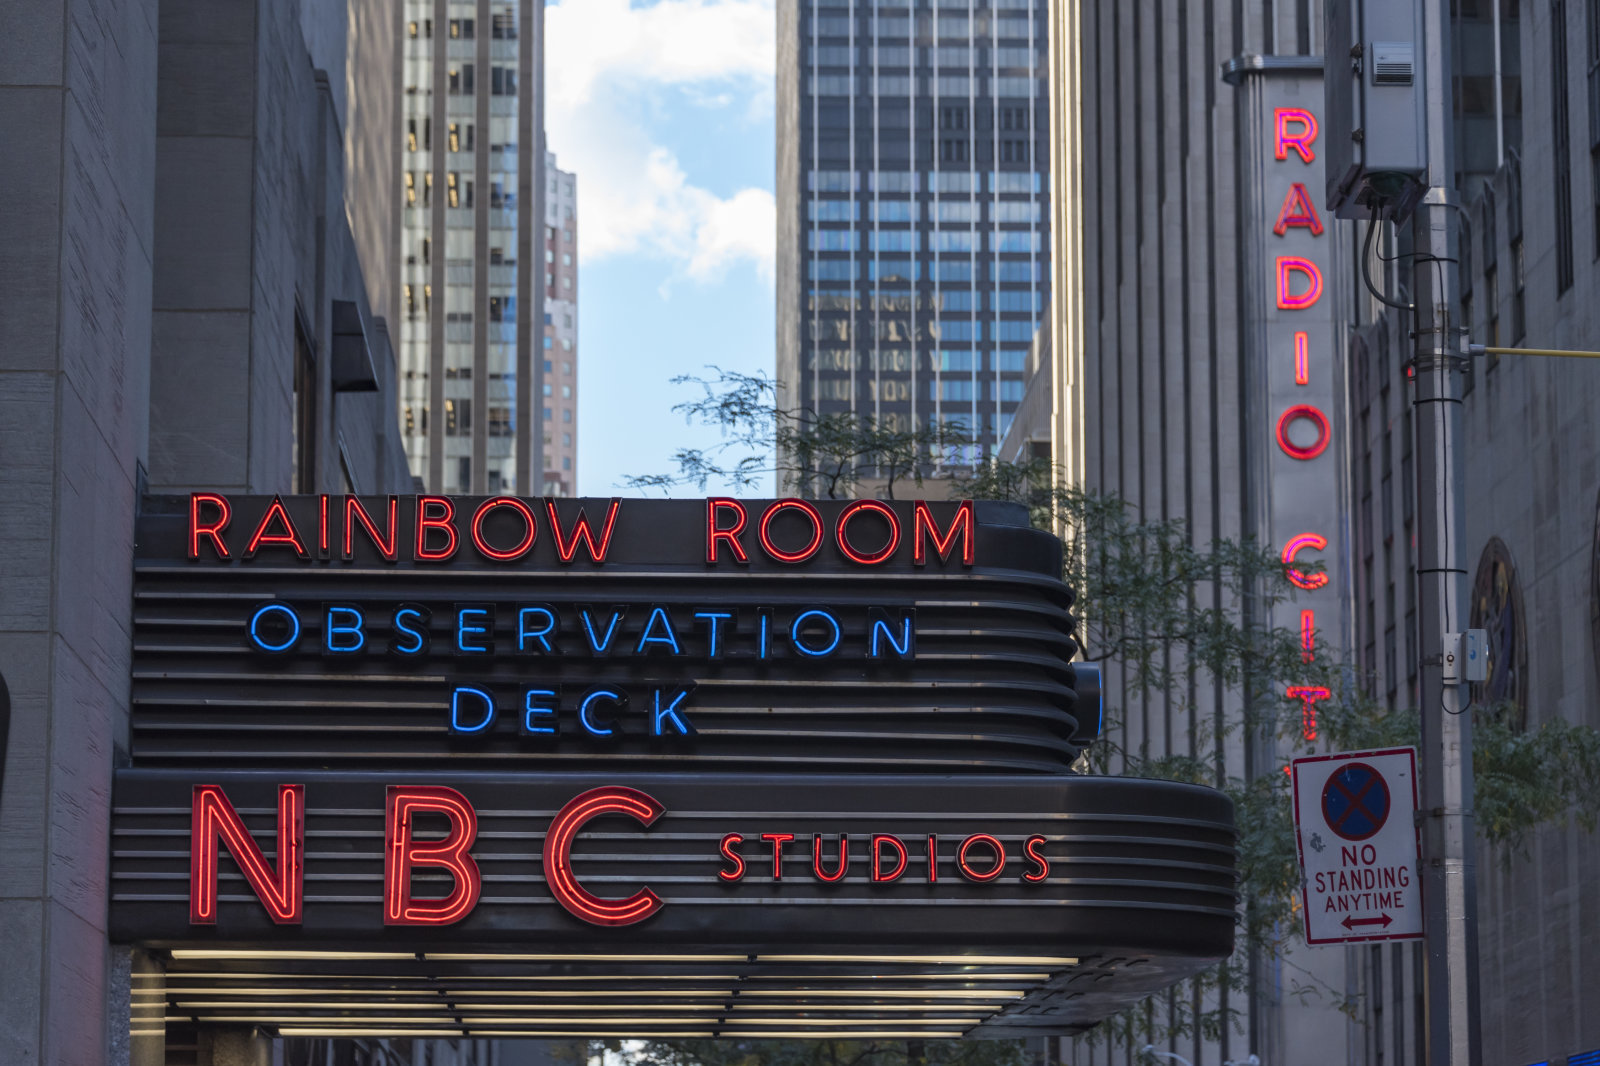 NBCUniversal to launch ad-supported TV streaming service in 2020